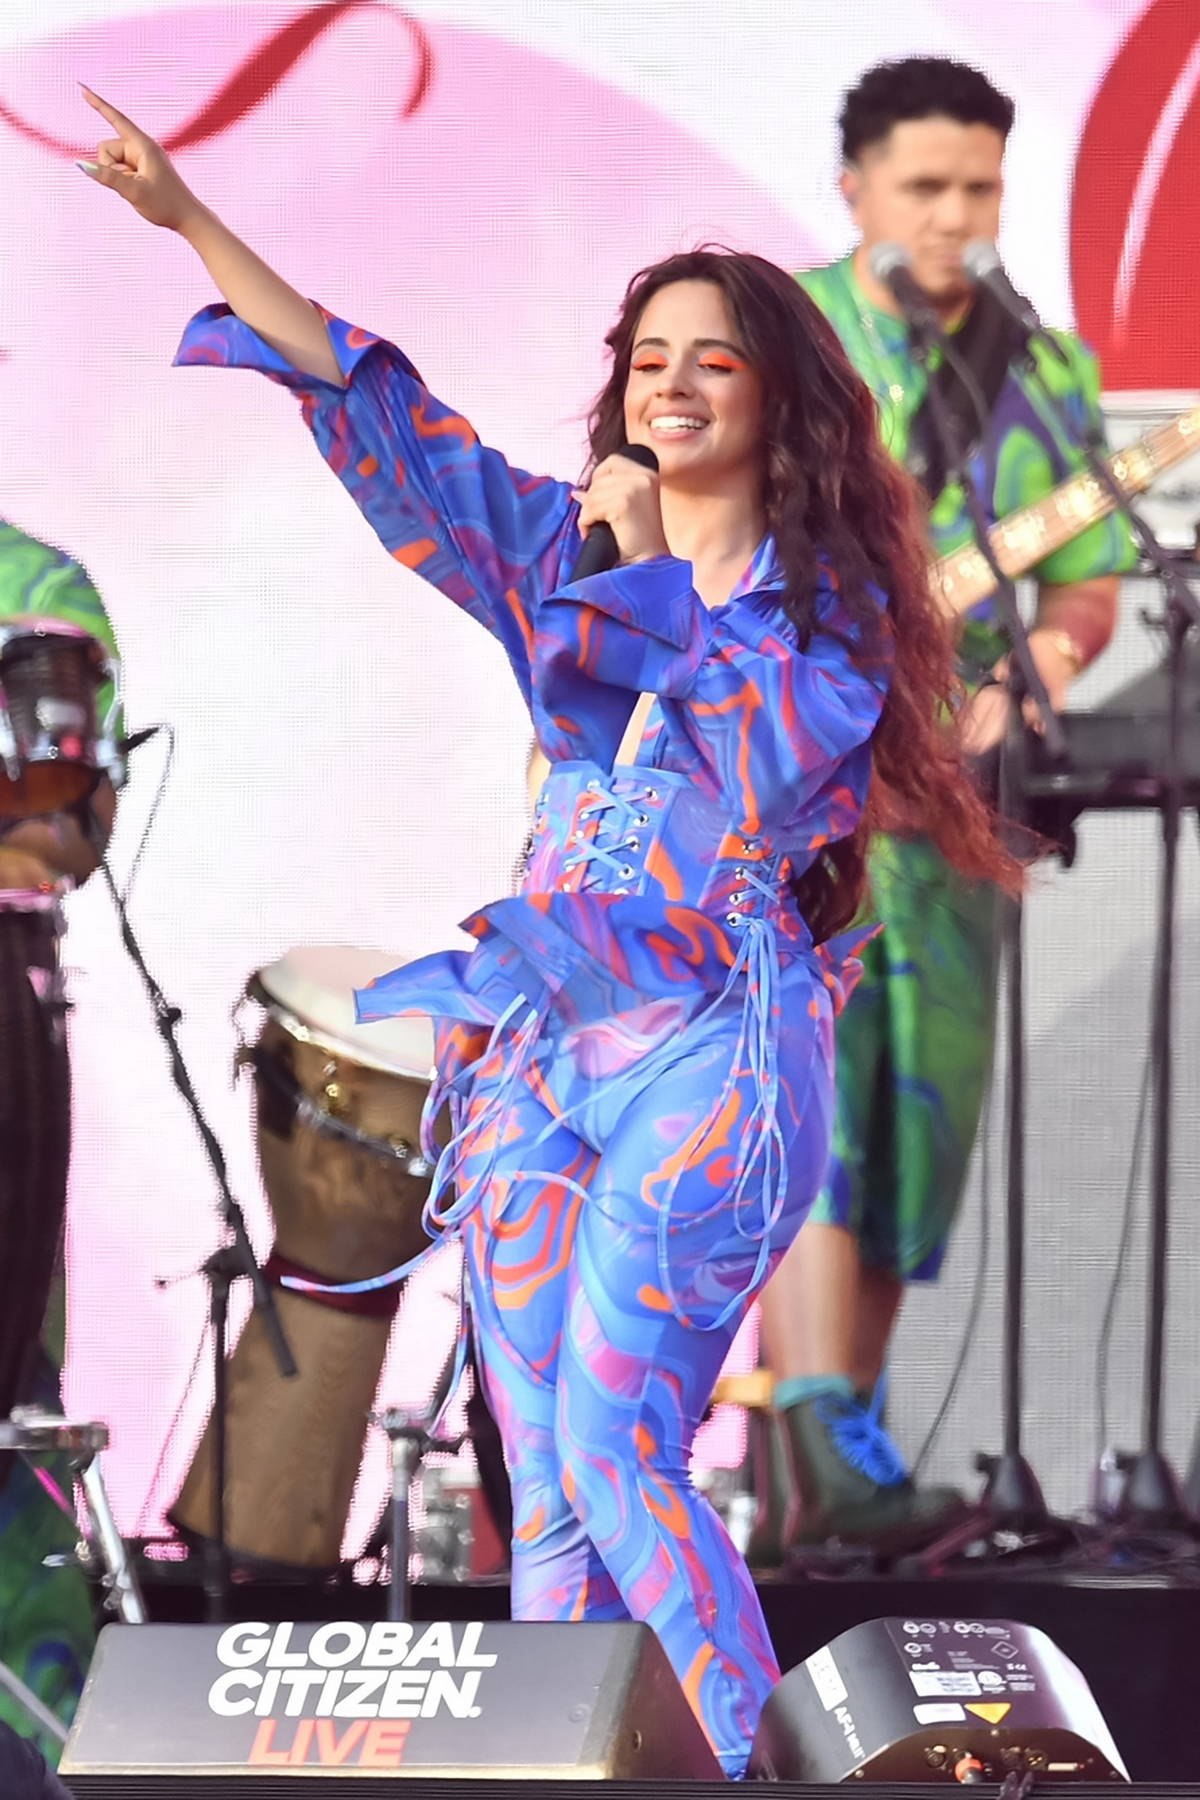 Camila Cabello and Shawn Mendes perform at the 2021 Global Citizen Live Festival at Central Park in New York City